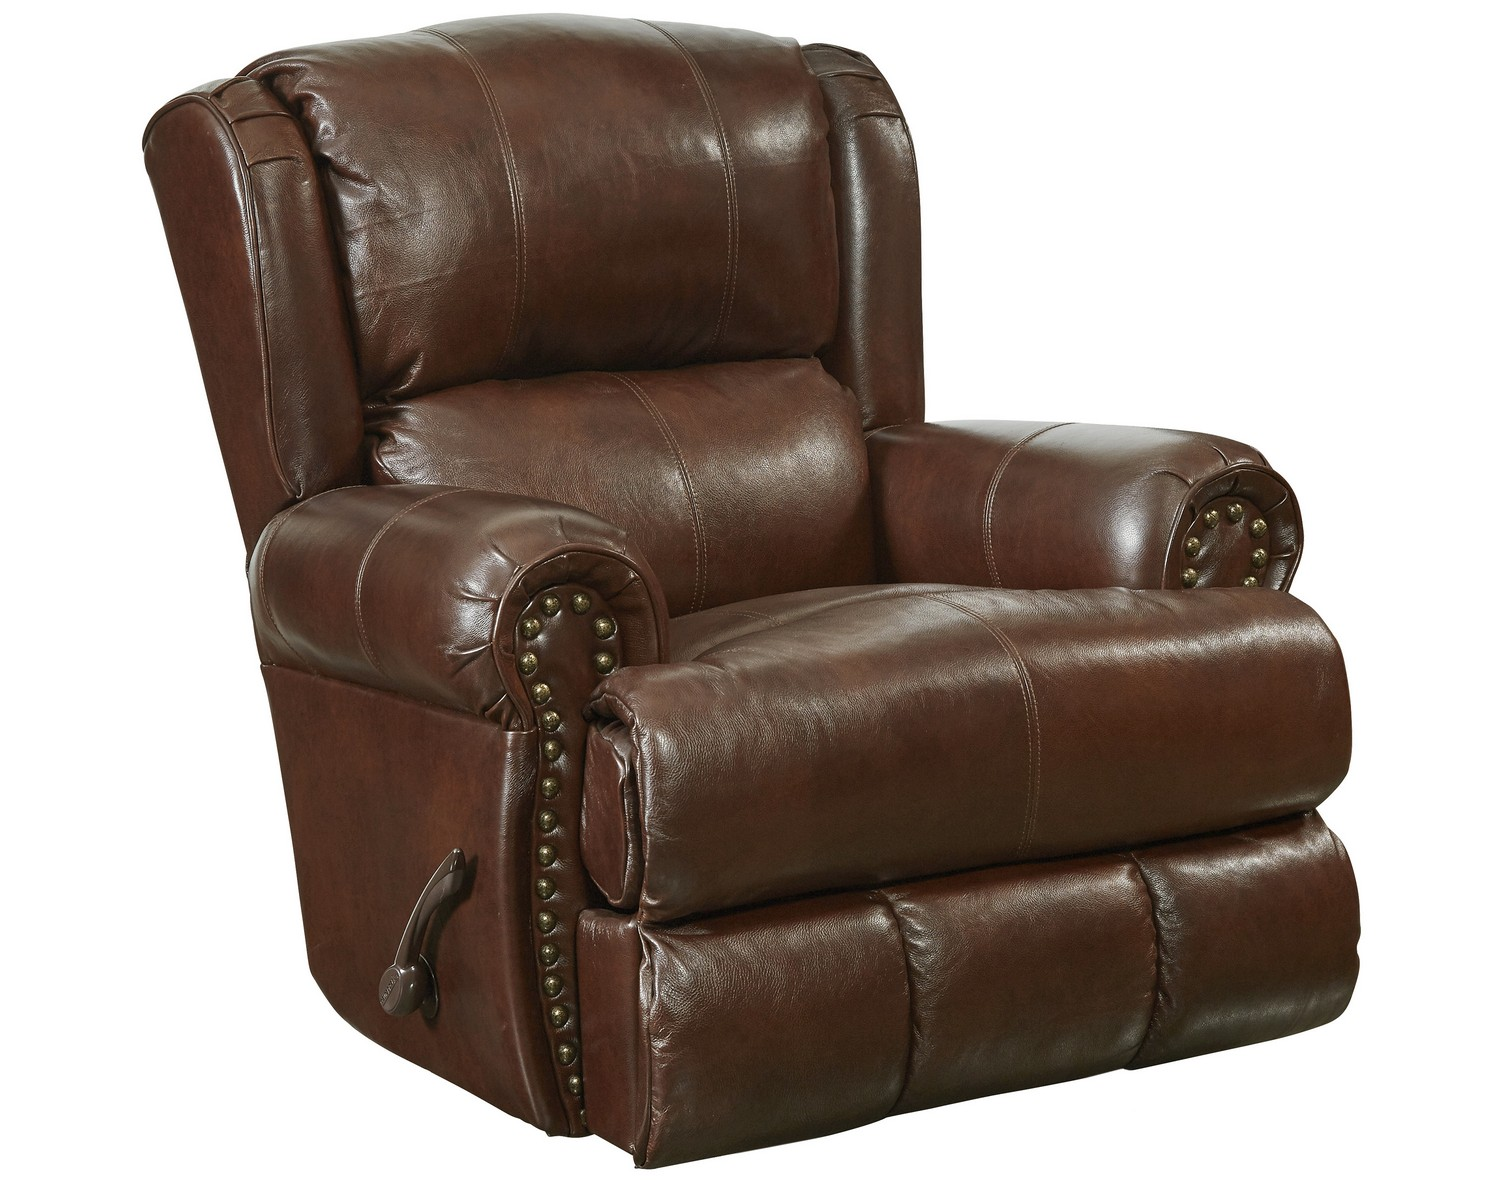 Catnapper Chair Catnapper Duncan Top Grain Leather Touch Deluxe Glider